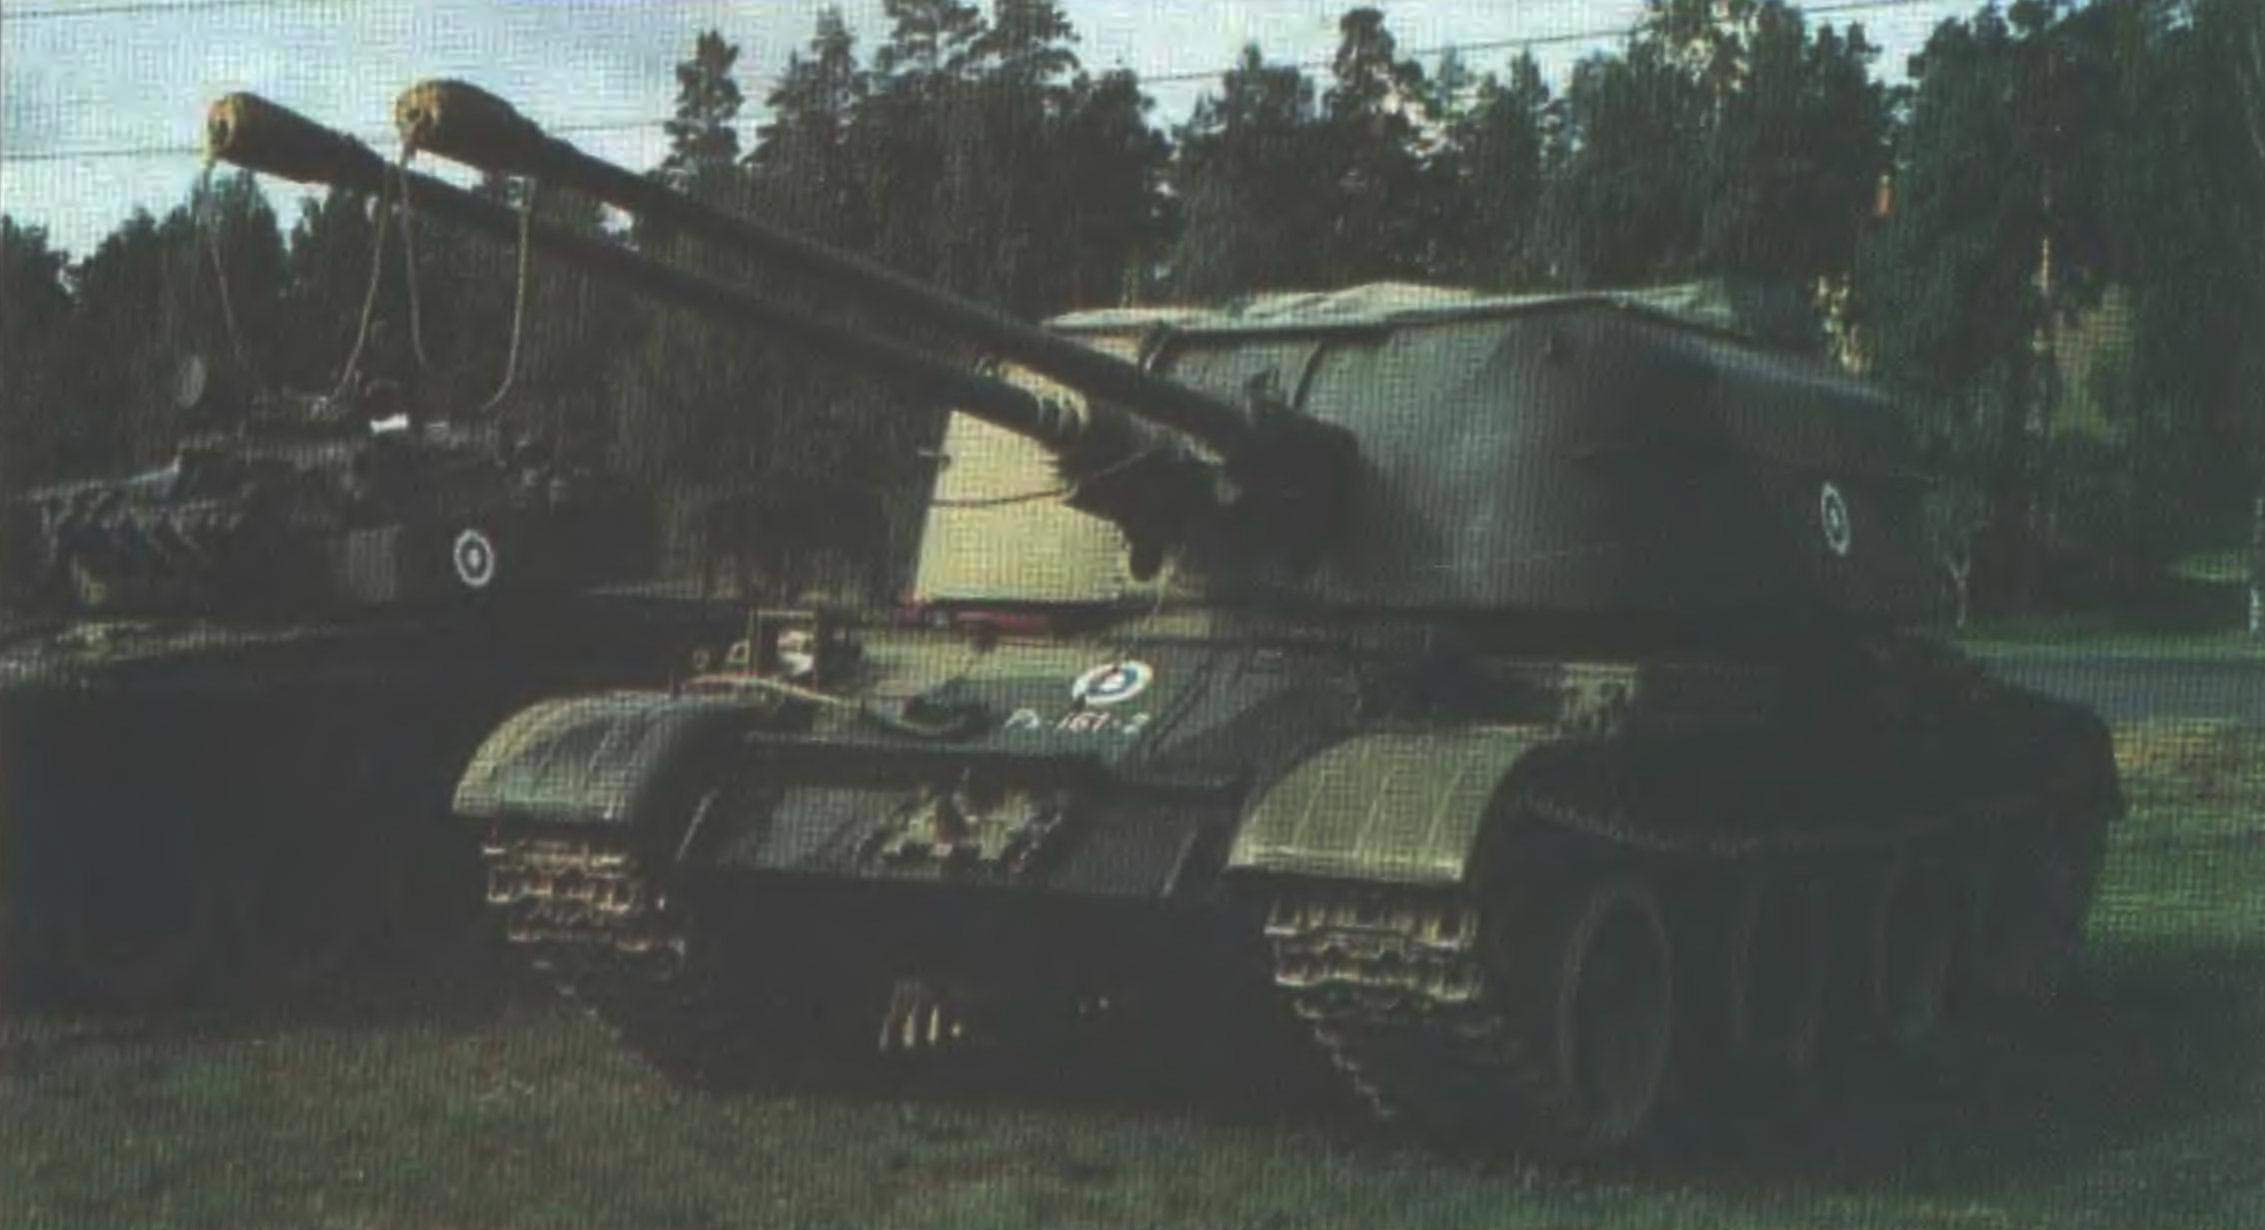 Self-propelled anti-aircraft weapon ZSU-57-2 of the Finnish army. Armed with air defense units of the country ZSU-57-2 were from 1960 to 1985